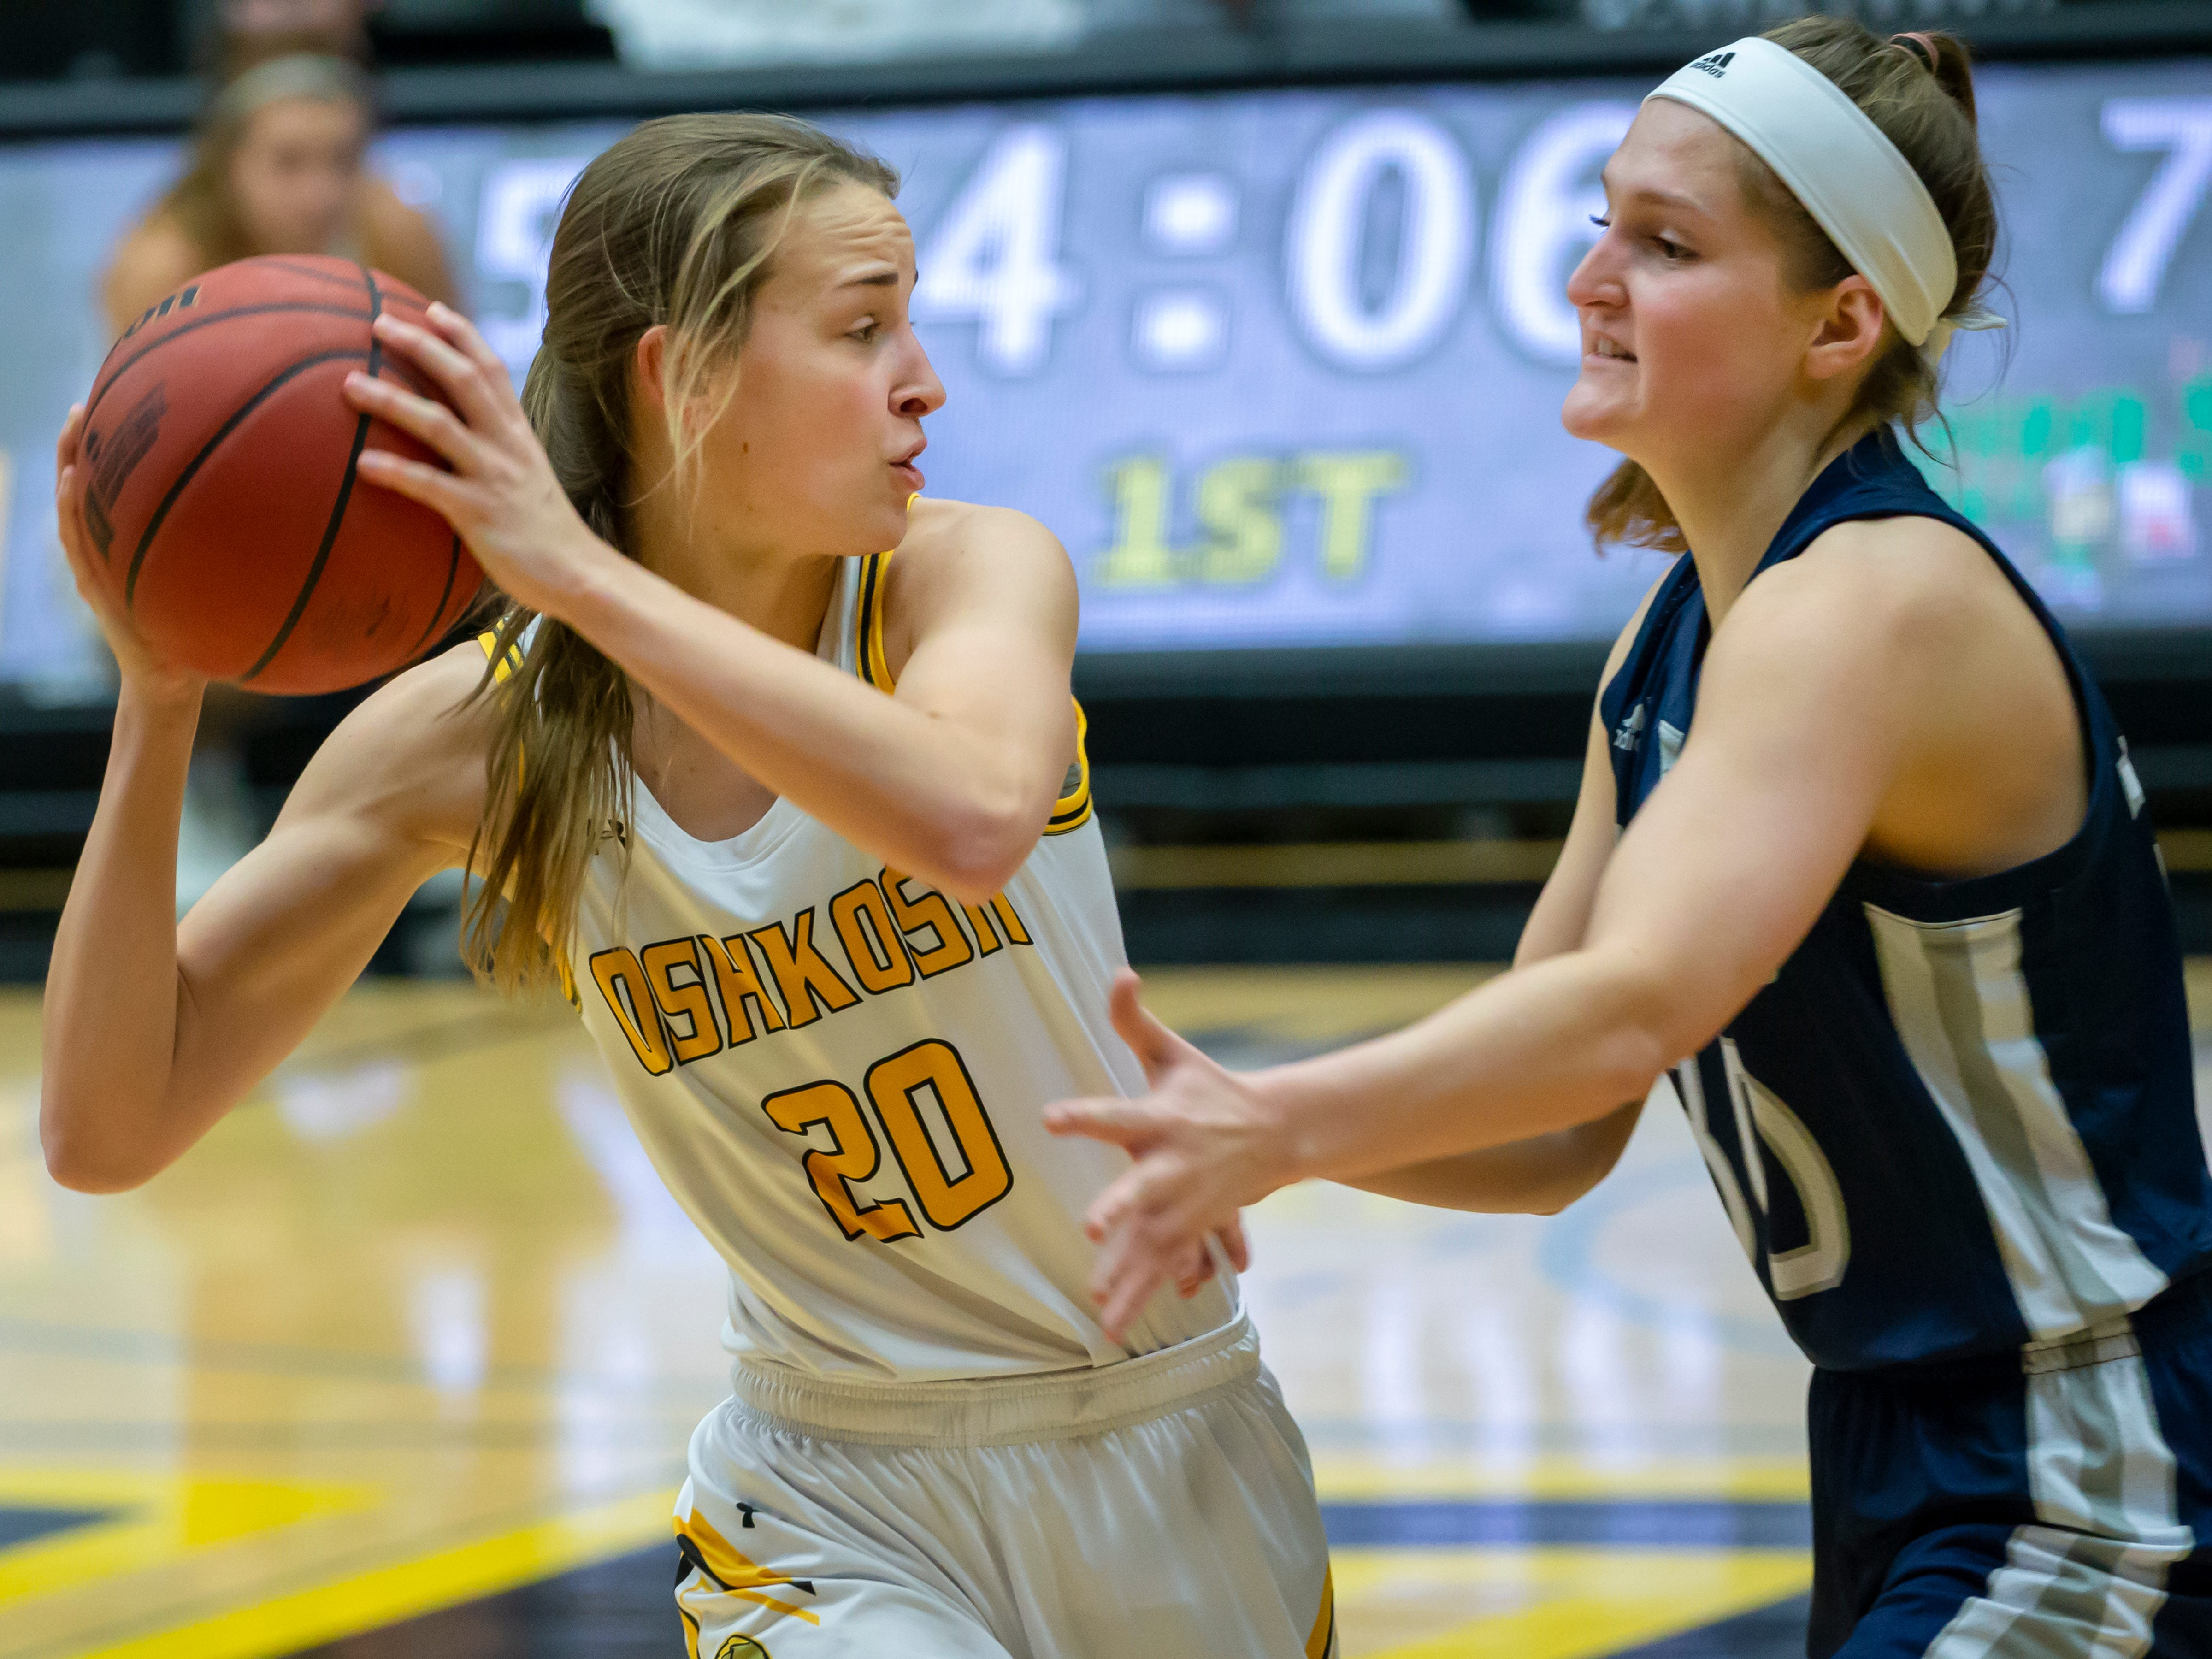 UW-Oshkosh's Jessie Rabas protects possession from UW-Stout's Carolyn Feddema at the Kolf Sports Center on Saturday, January 5, 2019.